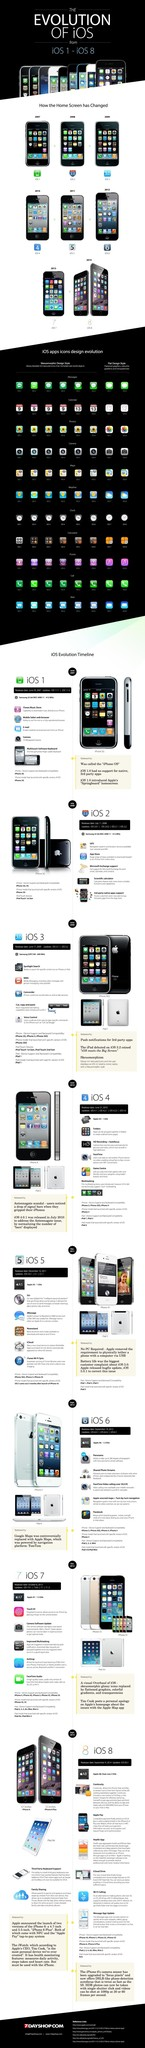 The-Evolution-of-iOS-1-to-8_1140px-640x9043